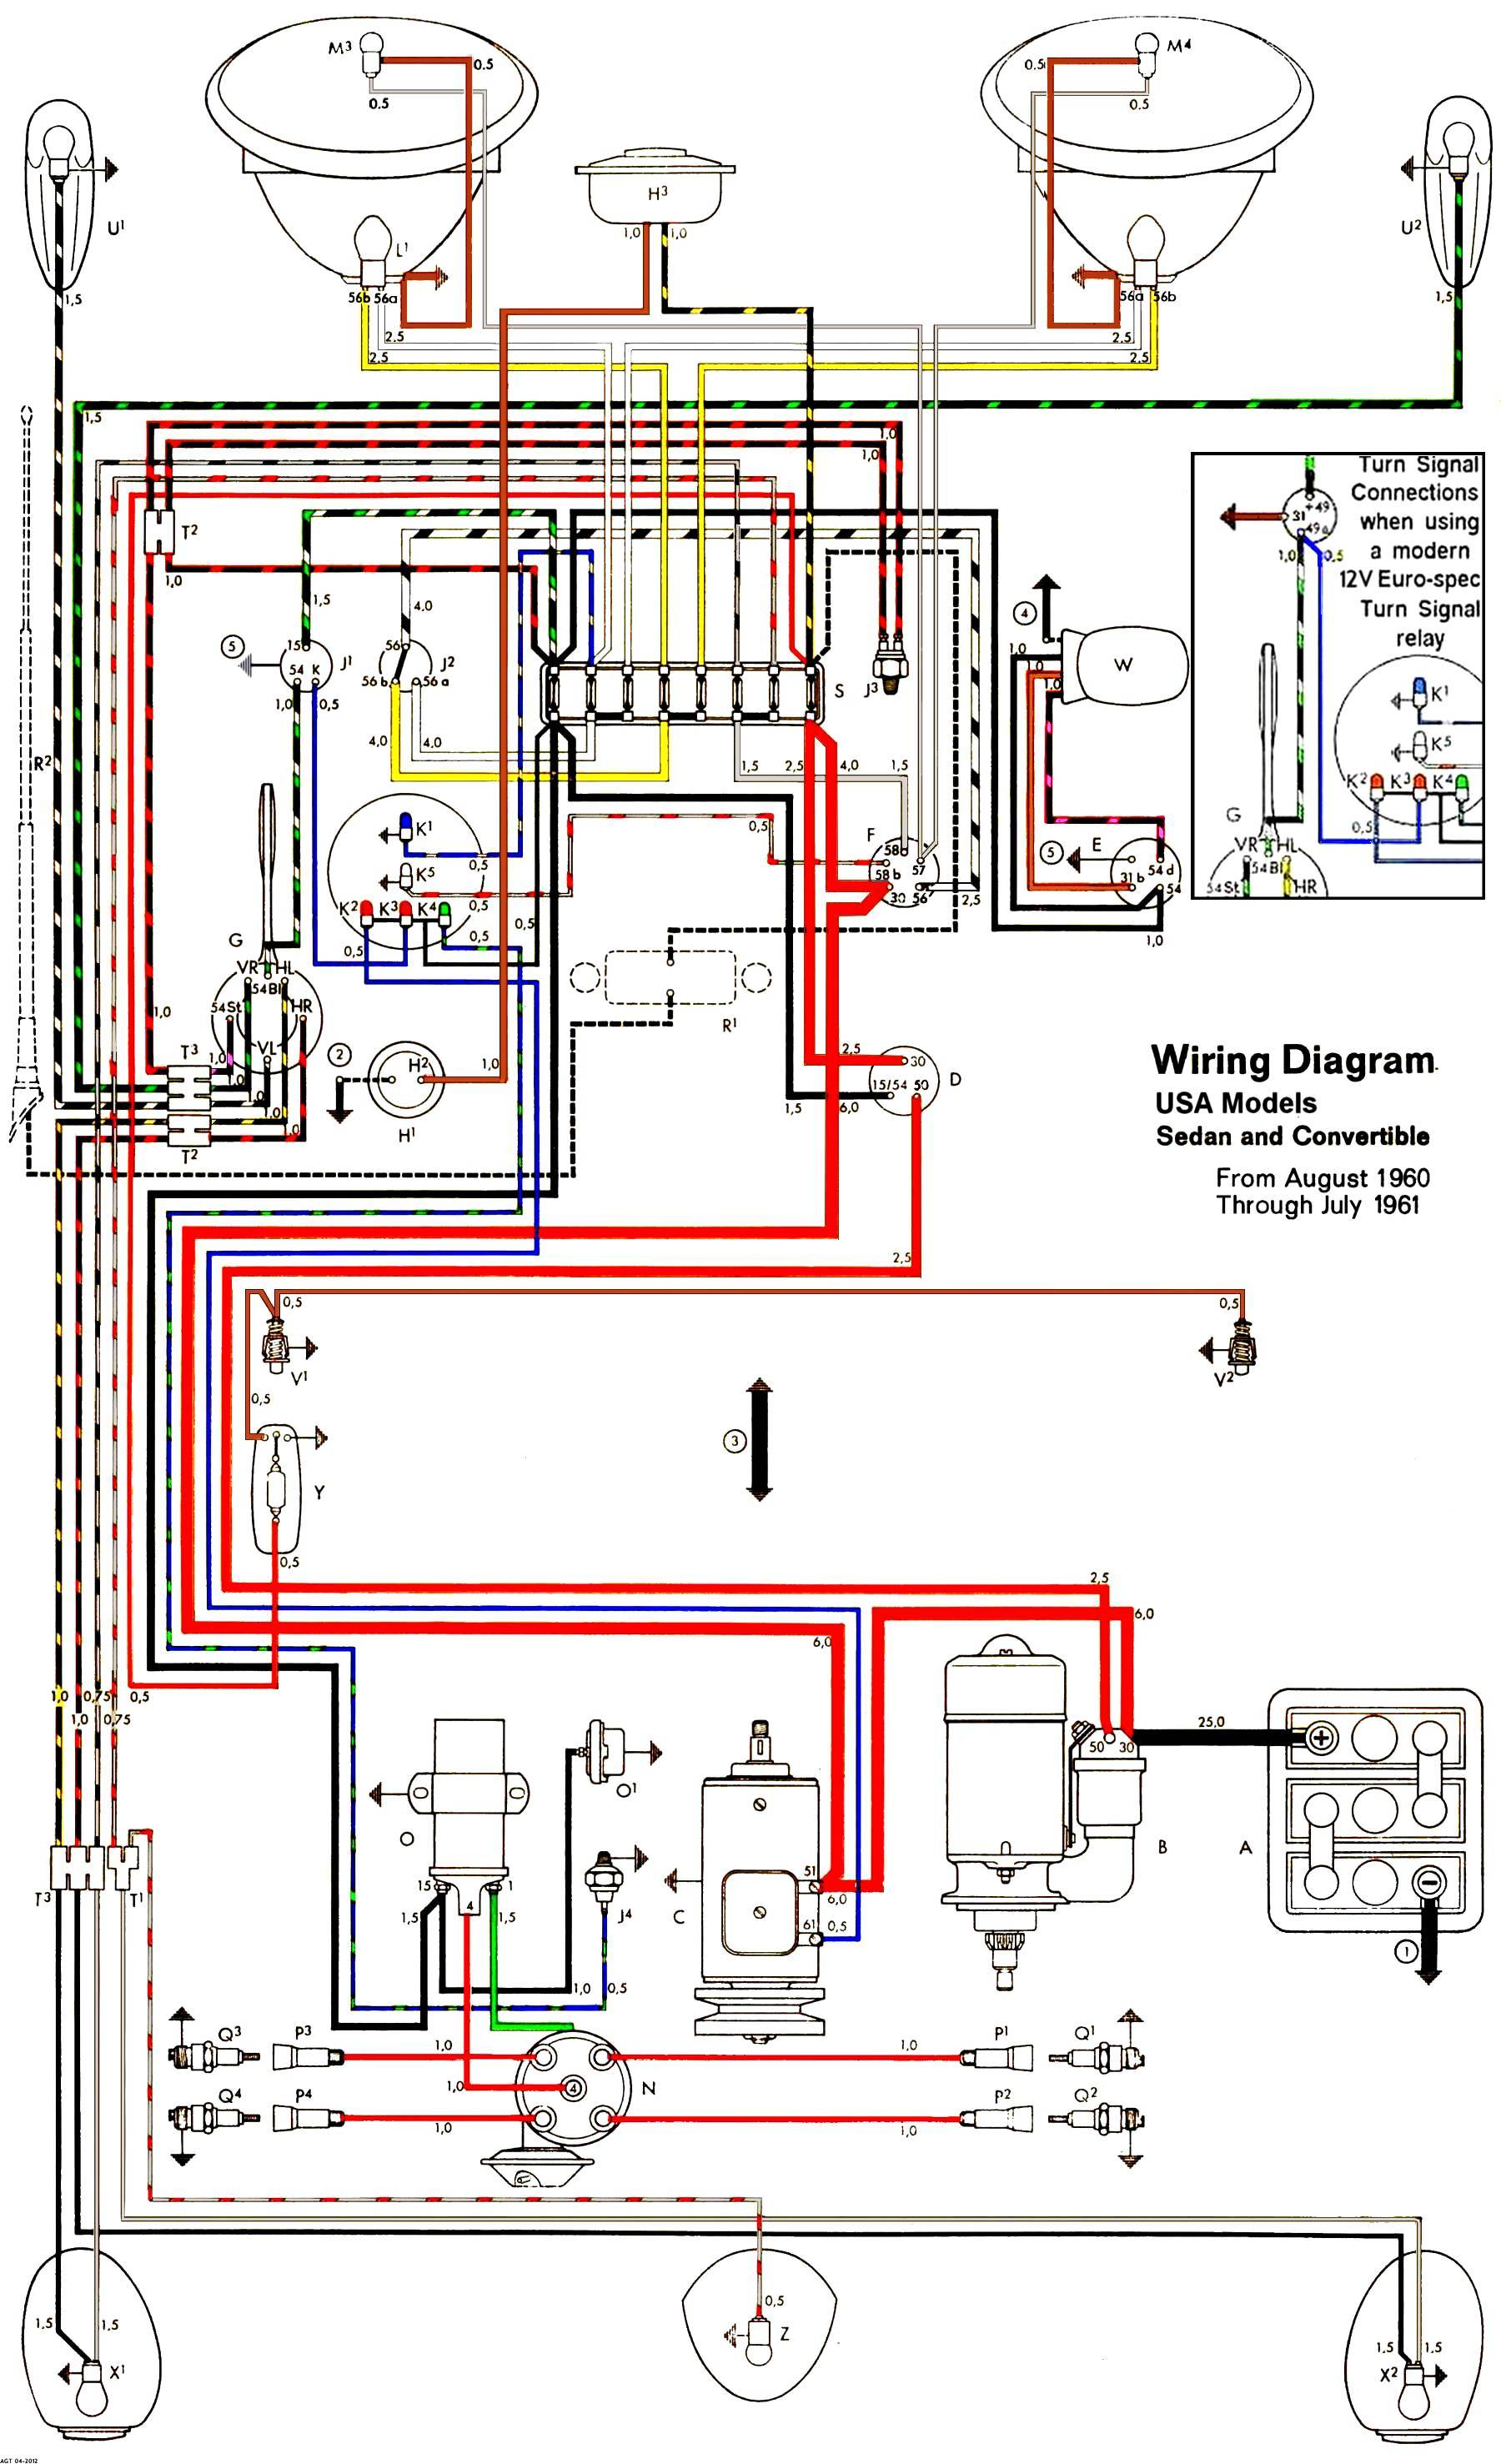 Rj 48c T1 Wiring Diagram | Best Wiring Liry T Rj C Wiring Diagram on t1 wiring digital, ip pbx diagram, t1 circuit diagram, t1 crossover cable diagram, t1 service diagram, rj45 loopback diagram, t1 hardware diagram, t1 network diagram, t1 pinout diagram, rj-48 pinout diagram, voice t1 connection diagram, cat 6 crossover cable diagram, security system diagram, t1 cabling diagram, t1 t2 t3 t4 motor wiring, t1 cable wiring, cat 5 crossover cable pinout diagram, t1 wiring scheme, t1 jack wiring, t1 circuit wiring,